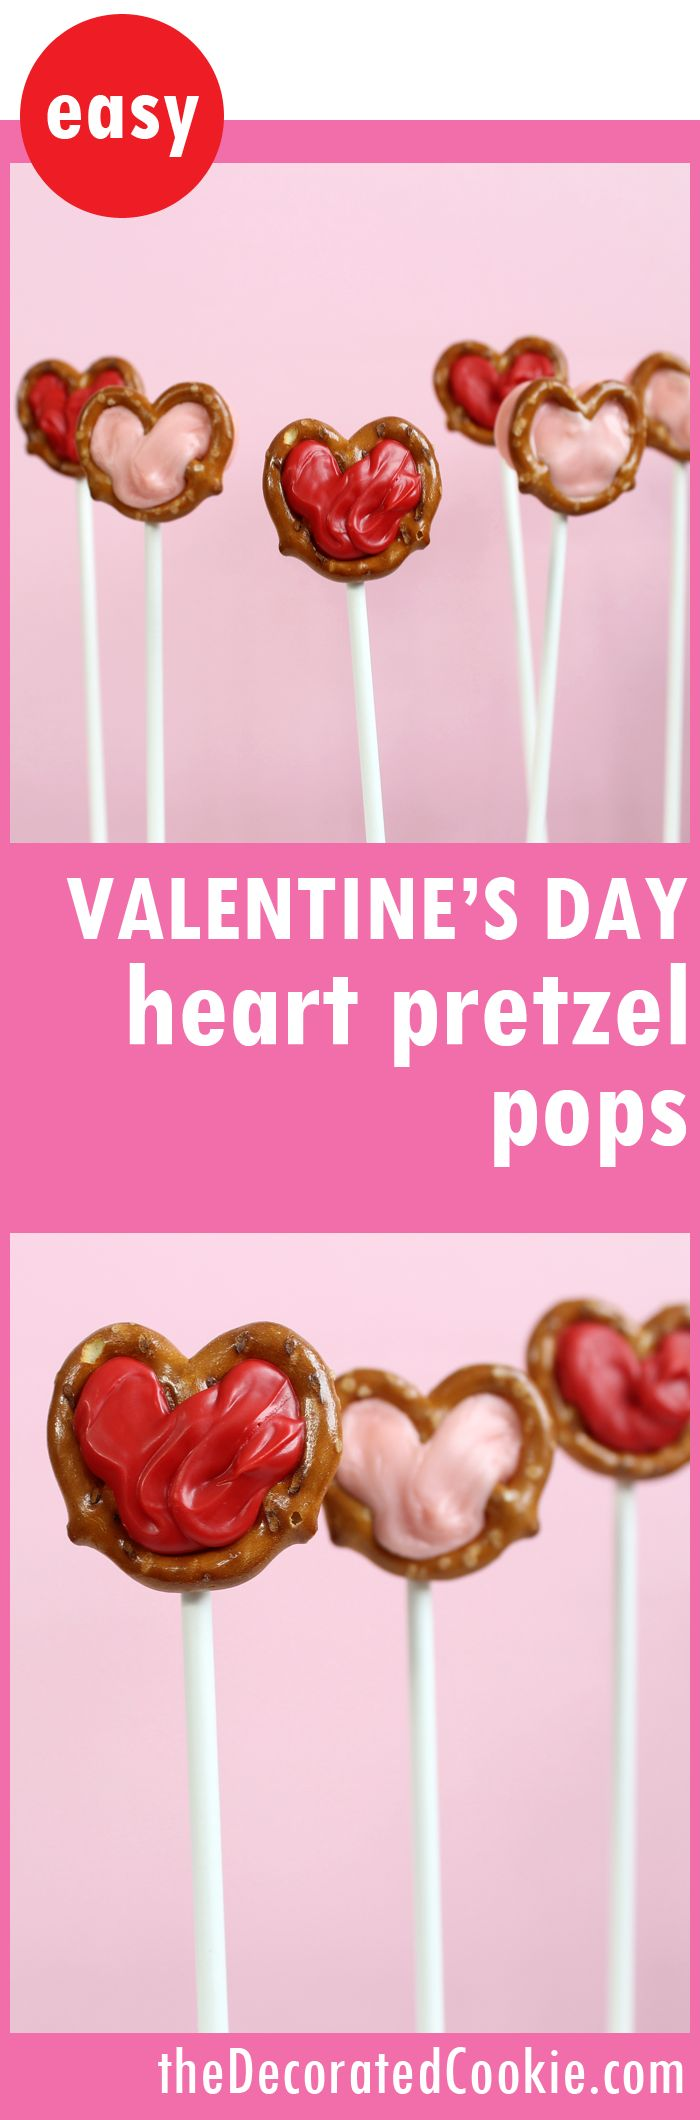 heart pretzel pops for Valentine's Day treats